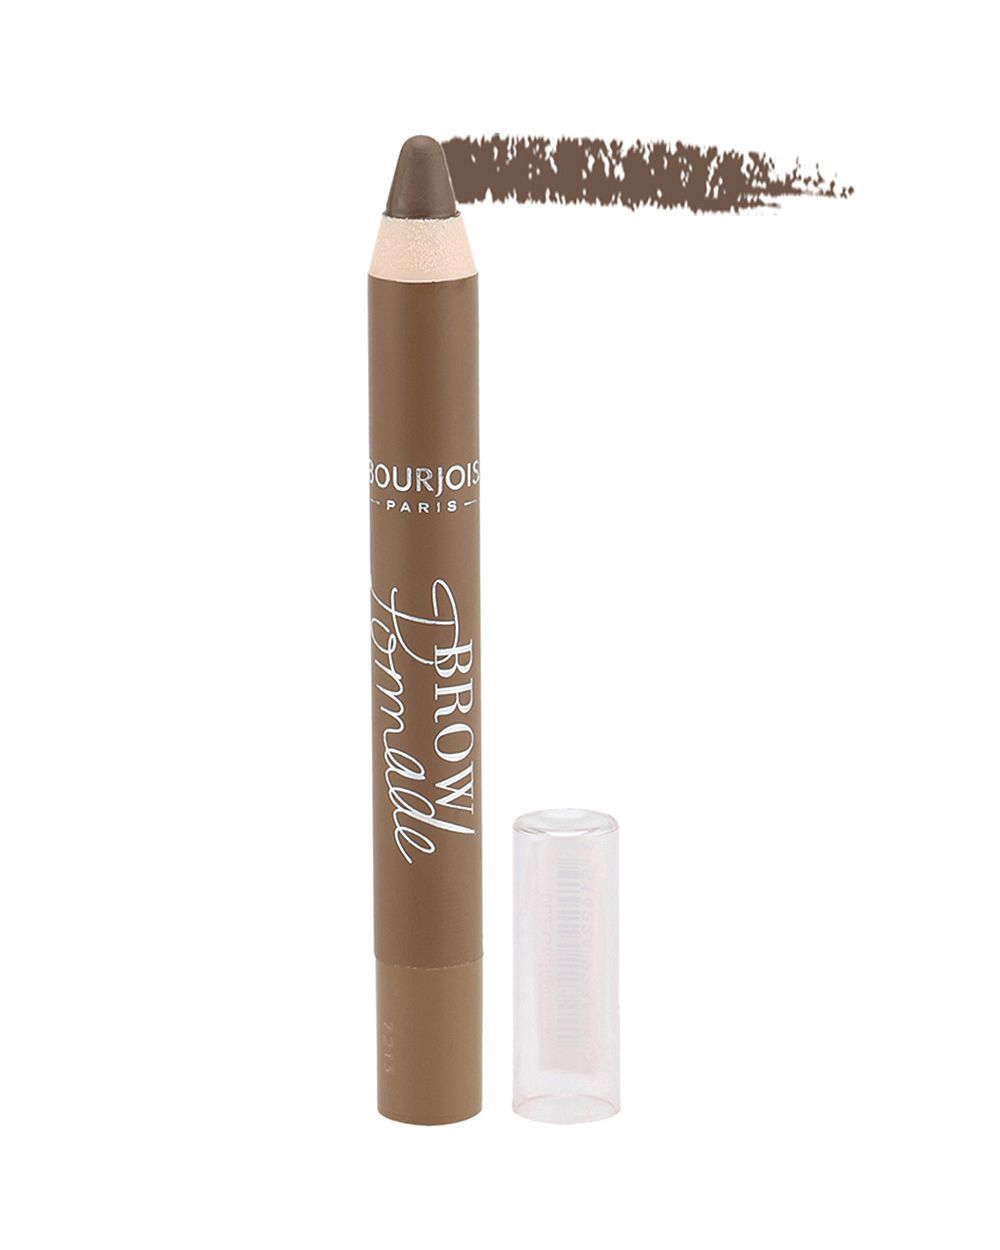 Brow Pomade Crayon Pencil by Bourjois, one of the best French makeup brands.